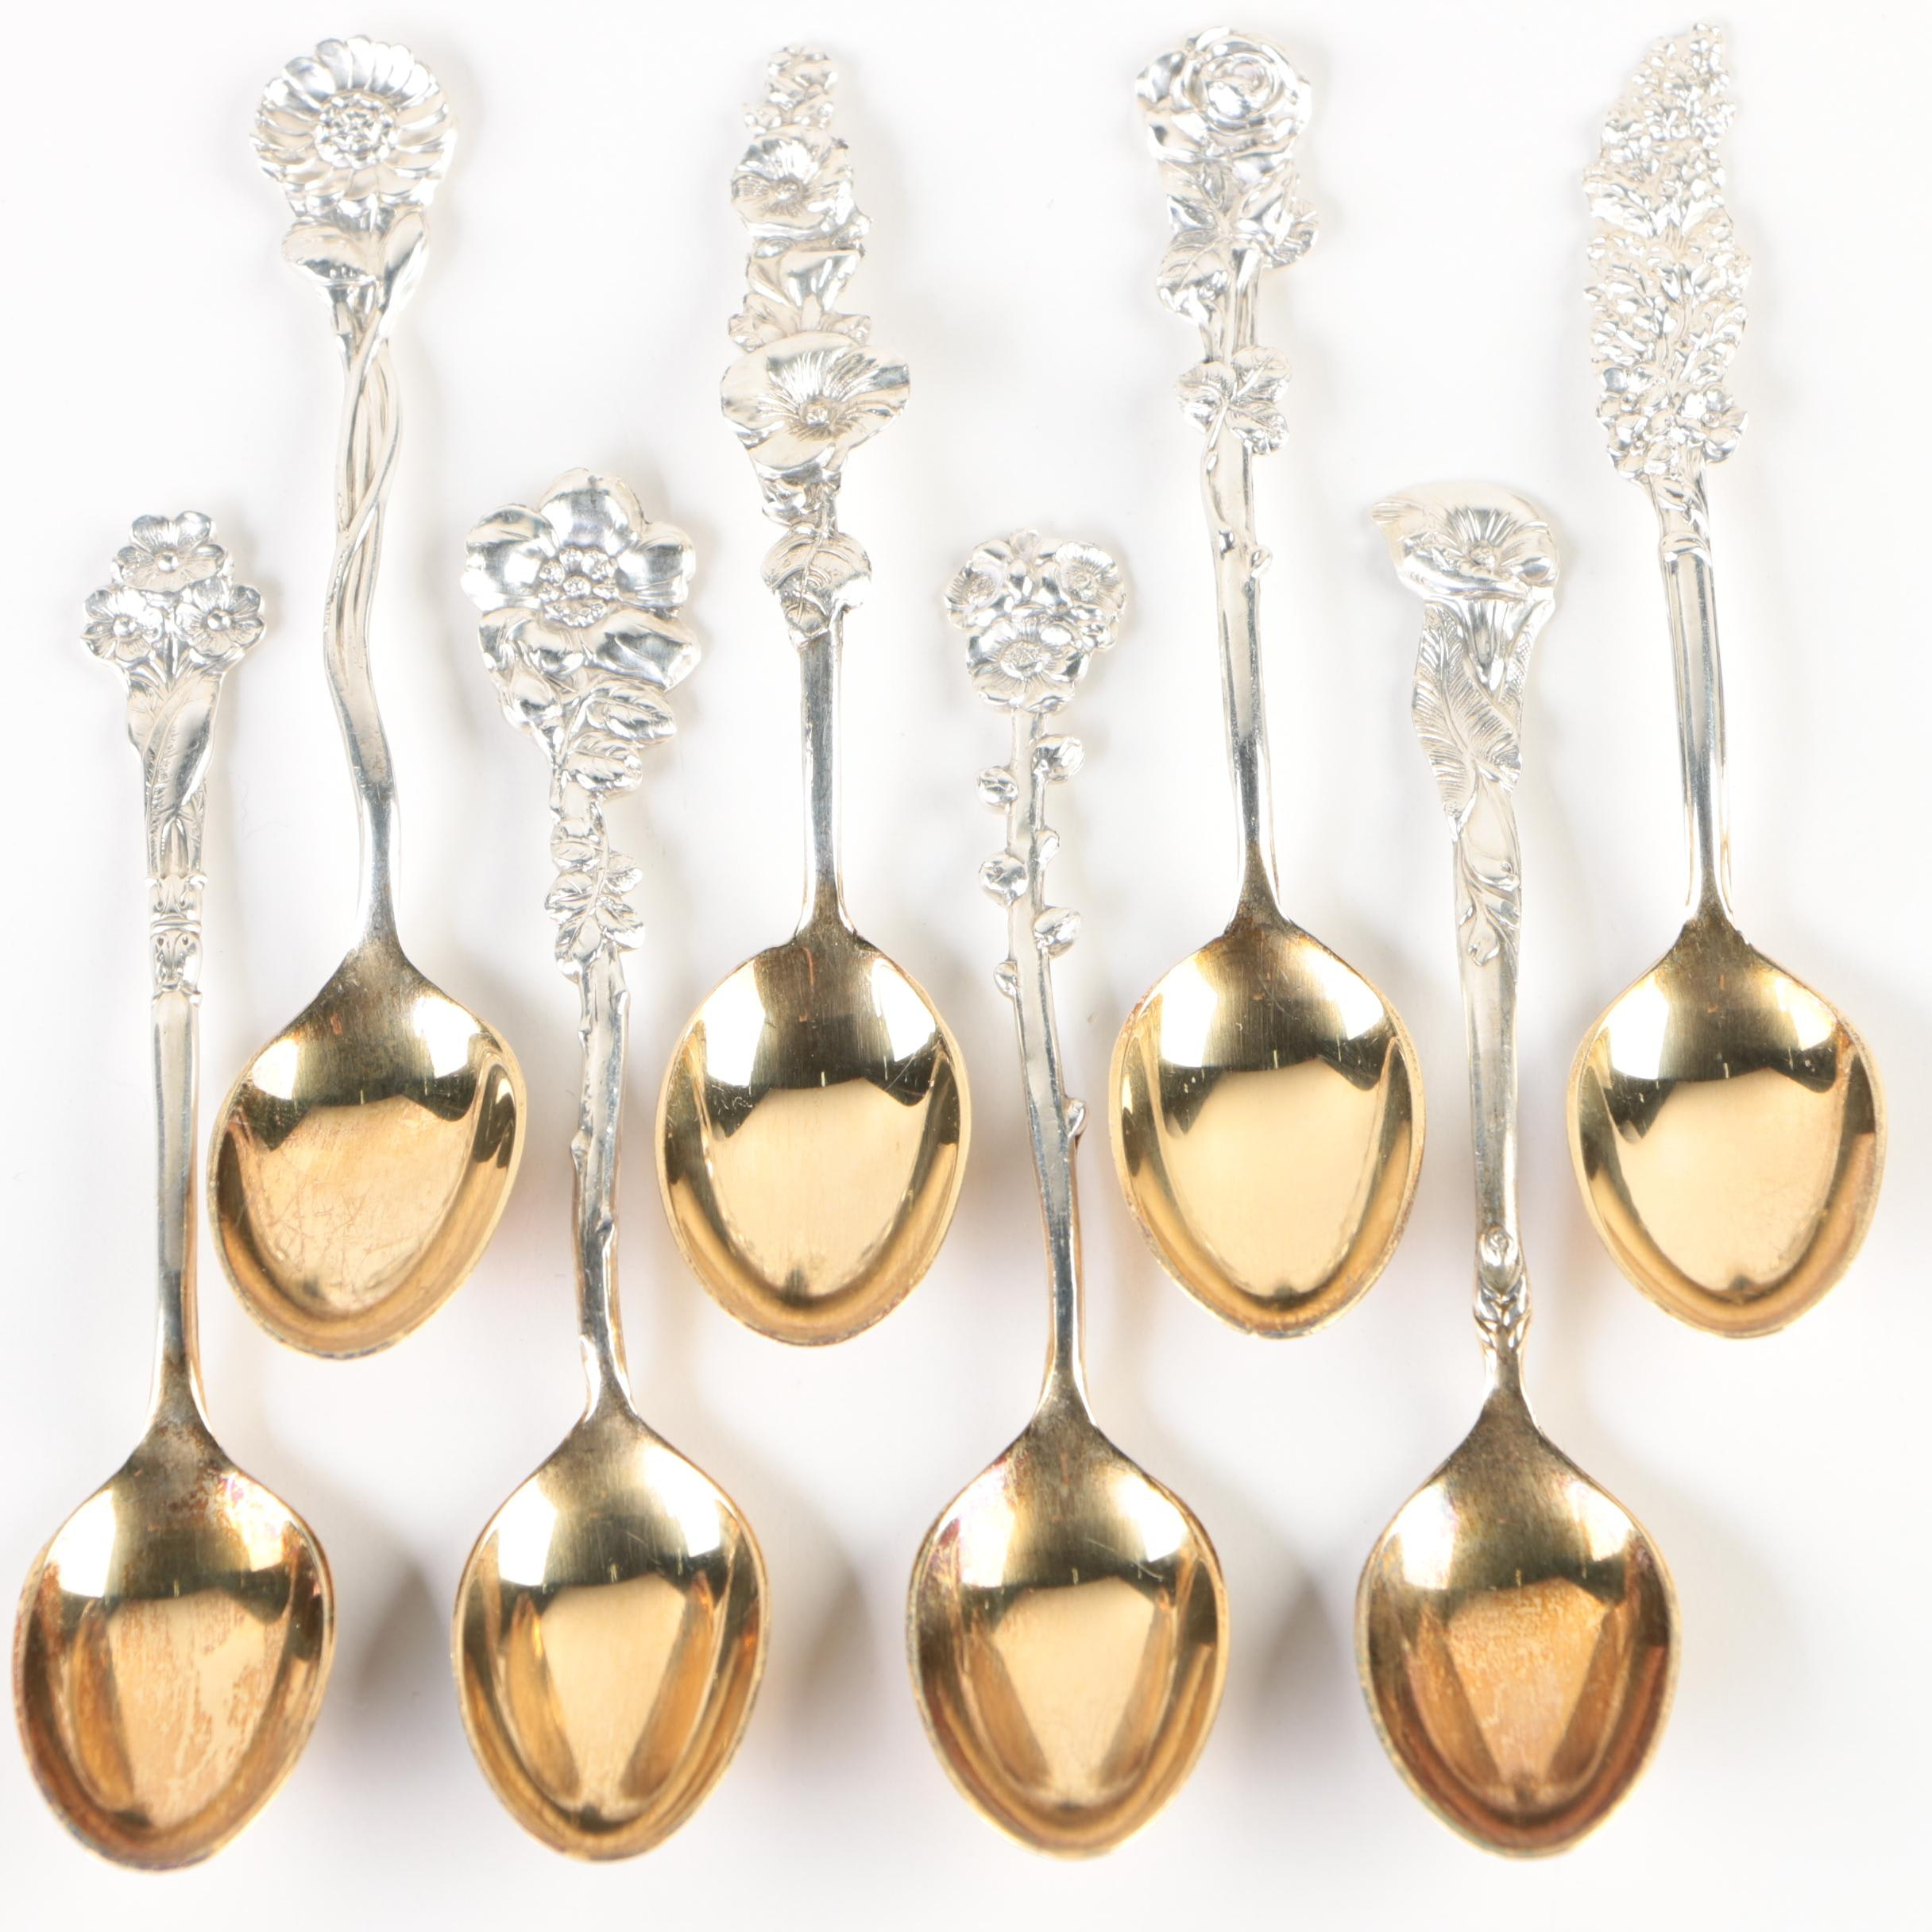 """Reed & Barton """"Harlequin"""" Sterling Demitasse Spoons with Gold Washed Bowls"""